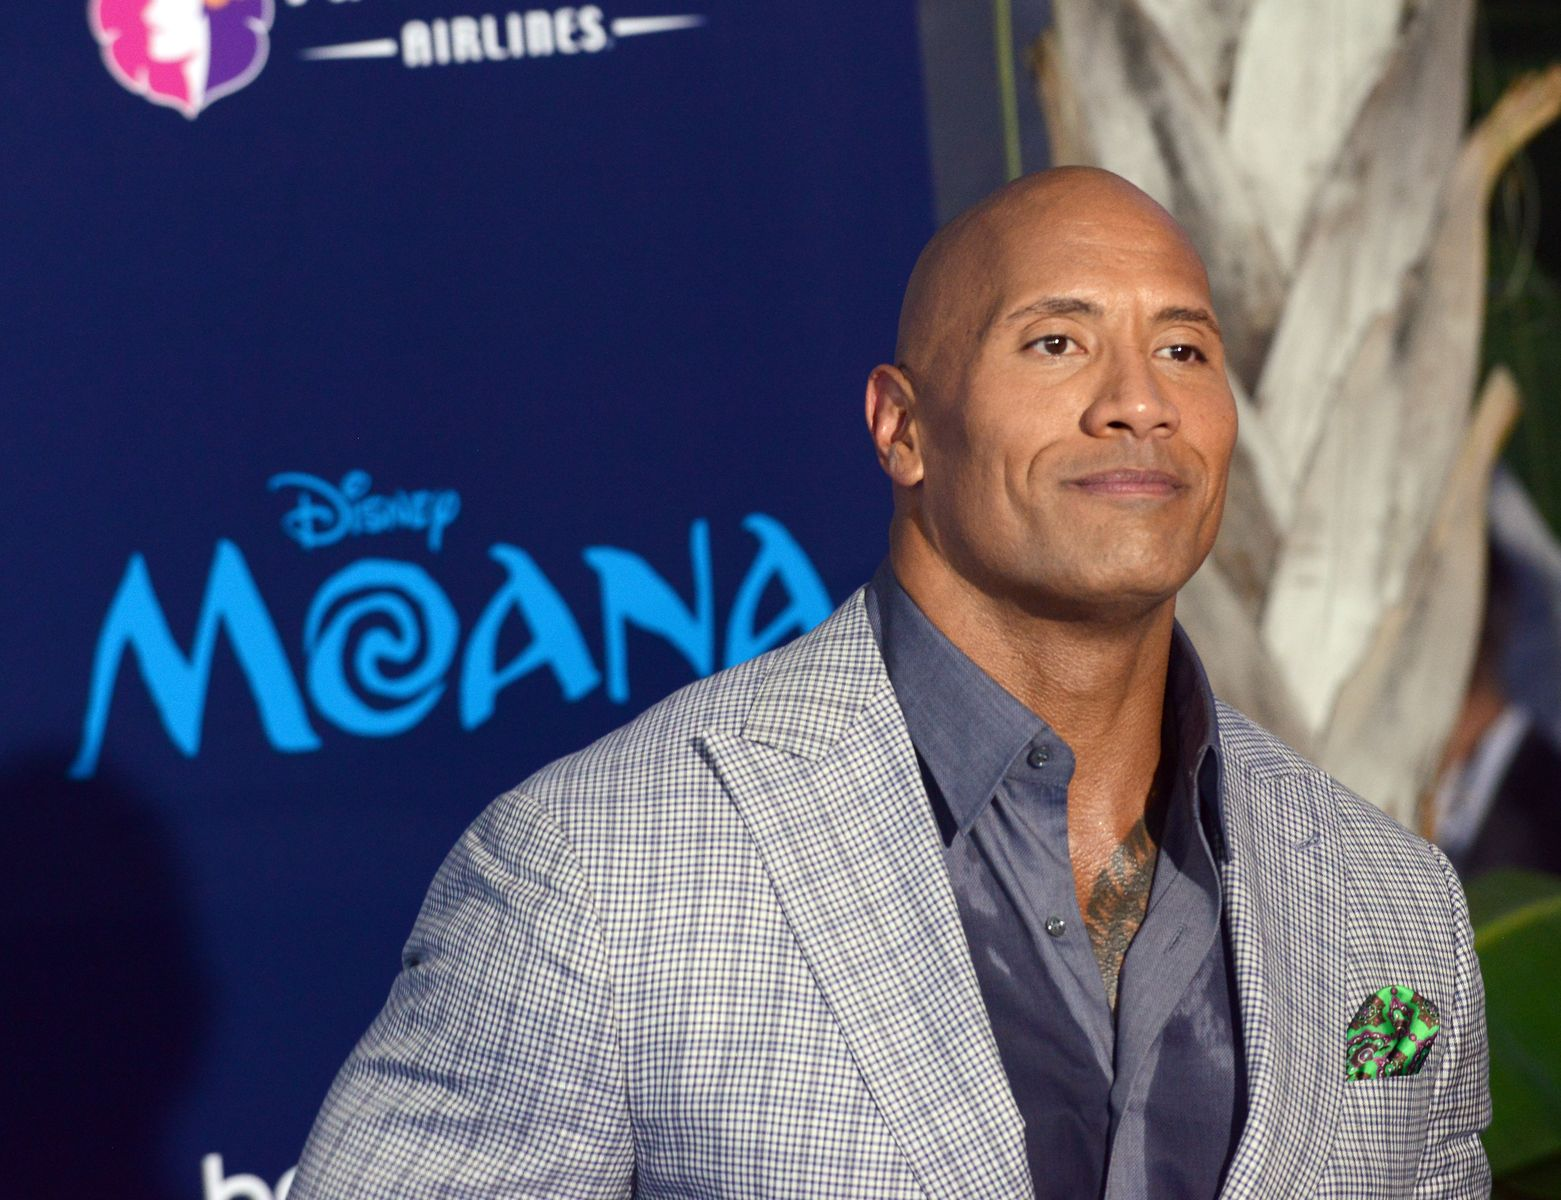 """Dwayne Johnson at the premiere of Disney's """"Moana"""" in 2016 in Hollywood 